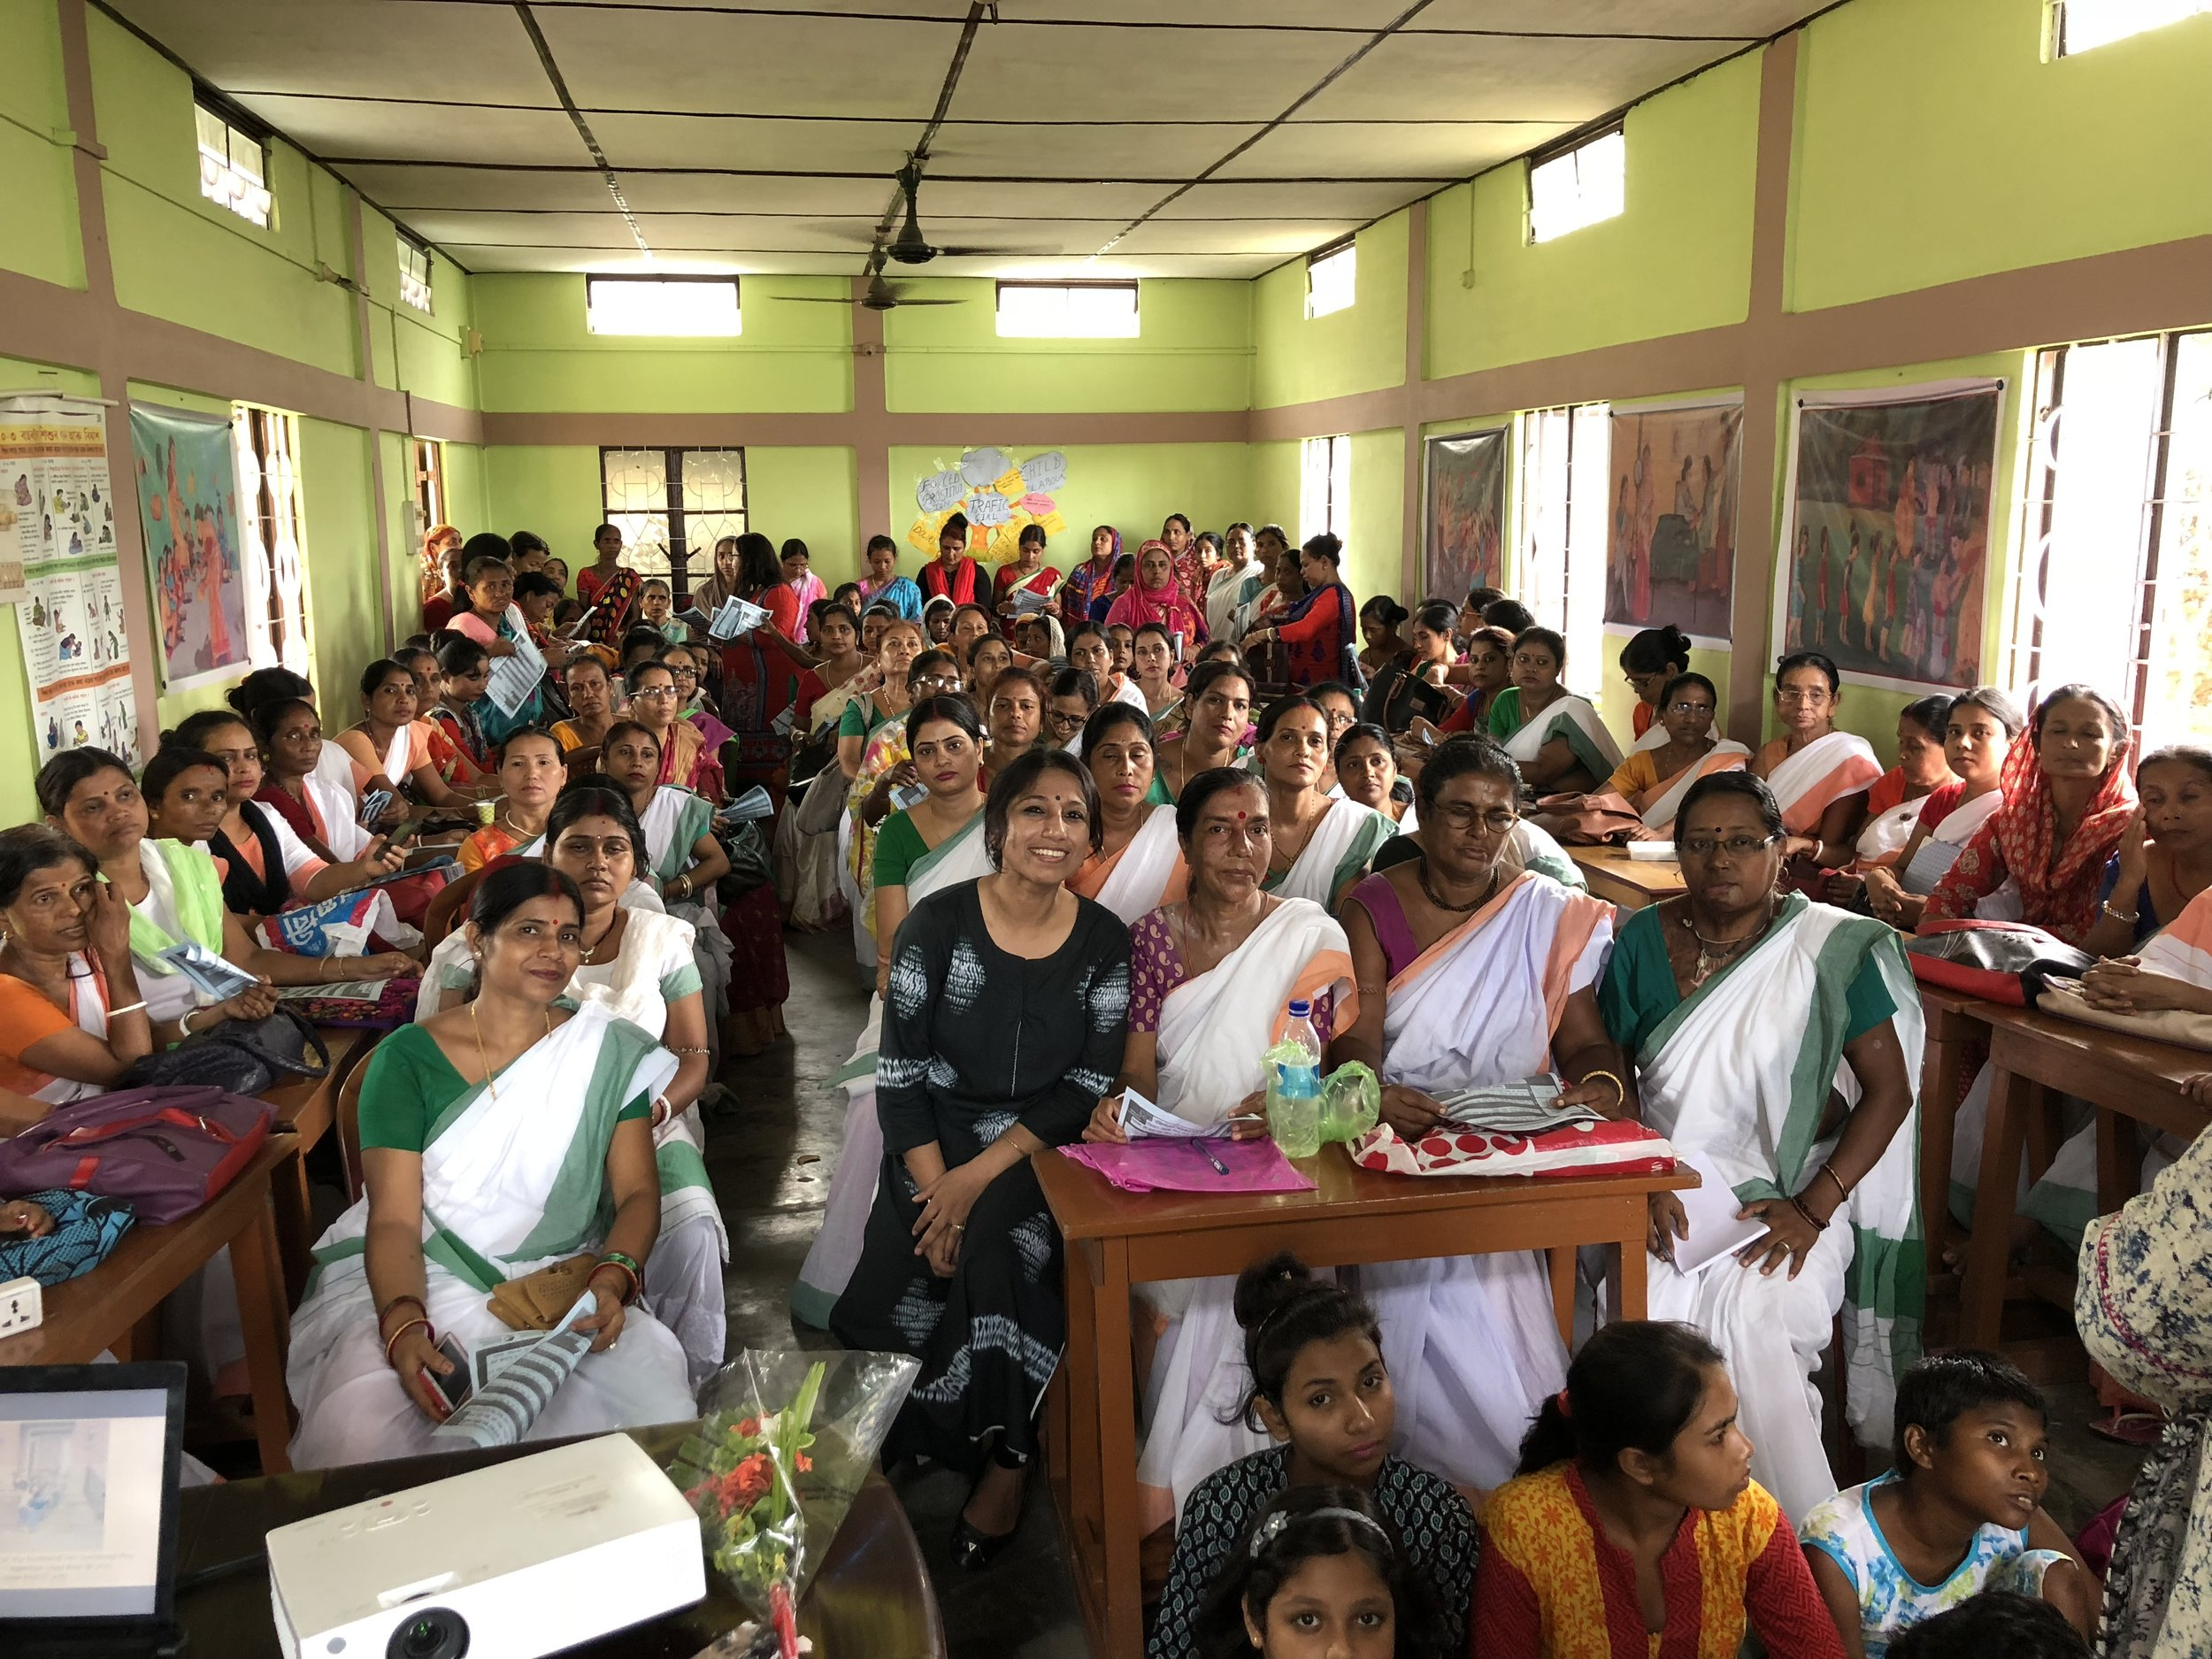 My sincere and heartfelt thanks to Mr. Subir Roy, Planning and Development Officer and Mrs. Diba Roy, Secretary, Nivedita Nari Sangstha for understanding the importance of Breast Cancer awareness and organizing the program by bringing in the Anganwadi workers. Anganwadi is a type of rural child care centre in India. They were started by the Indian government in 1975 as part of the Integrated Child Development Services (ICDS) program to combat child hunger and malnutrition. They help in providing basic education for children and enrolling women to undertake antenatal care. They are also responsible for immunization of children and pregnant women. I am sincerely thankful to all the members who helped in organizing the event:: Ms. Anwara Begum Laskar (helper); Ms. Sumedha Choudhury (Project Manager); Ms. Mahmuda Khanam Laskar (Worker); Ms. Urmi Biswas (Principal); Mrs. Sweety Das (Instructor); Mrs. Diba Roy (Secretary); Ms. Barsha Deb (Instructor); Mr. Subir Roy (Planning and Development Officer). Sincere thanks to Mrs. Kanchan Bhaya (Senior Process Consultant, TechnipFMC) for coming up and helping during the event. I had enormous rounds of interactions with Anganwadi workers and how they can collectively come together to support Breast Cancer awareness & explain Breast self examination since the Anganwadi workers have direct outreach to the rural sectors – mothers who bring their children to them, women undertaking antenatal care, and other women from various divisions. They have a great opportunity to take the message forward (I will guide them through & through) to the rural India.